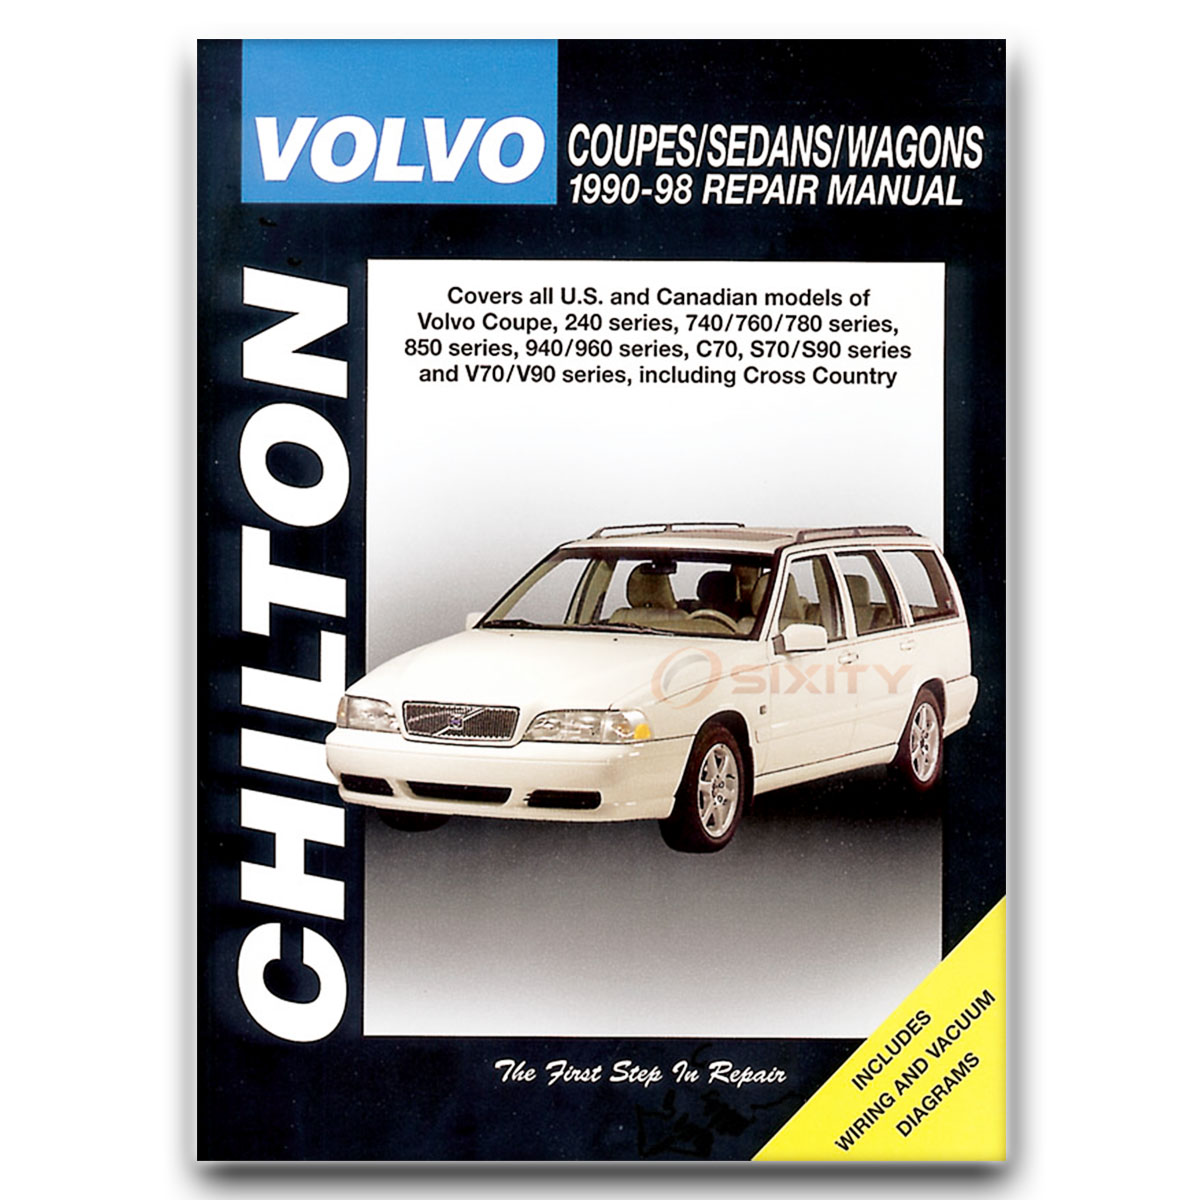 Volvo V70 Chilton Repair Manual GLT X/C AWD R Base T5 Shop Service Garage hn